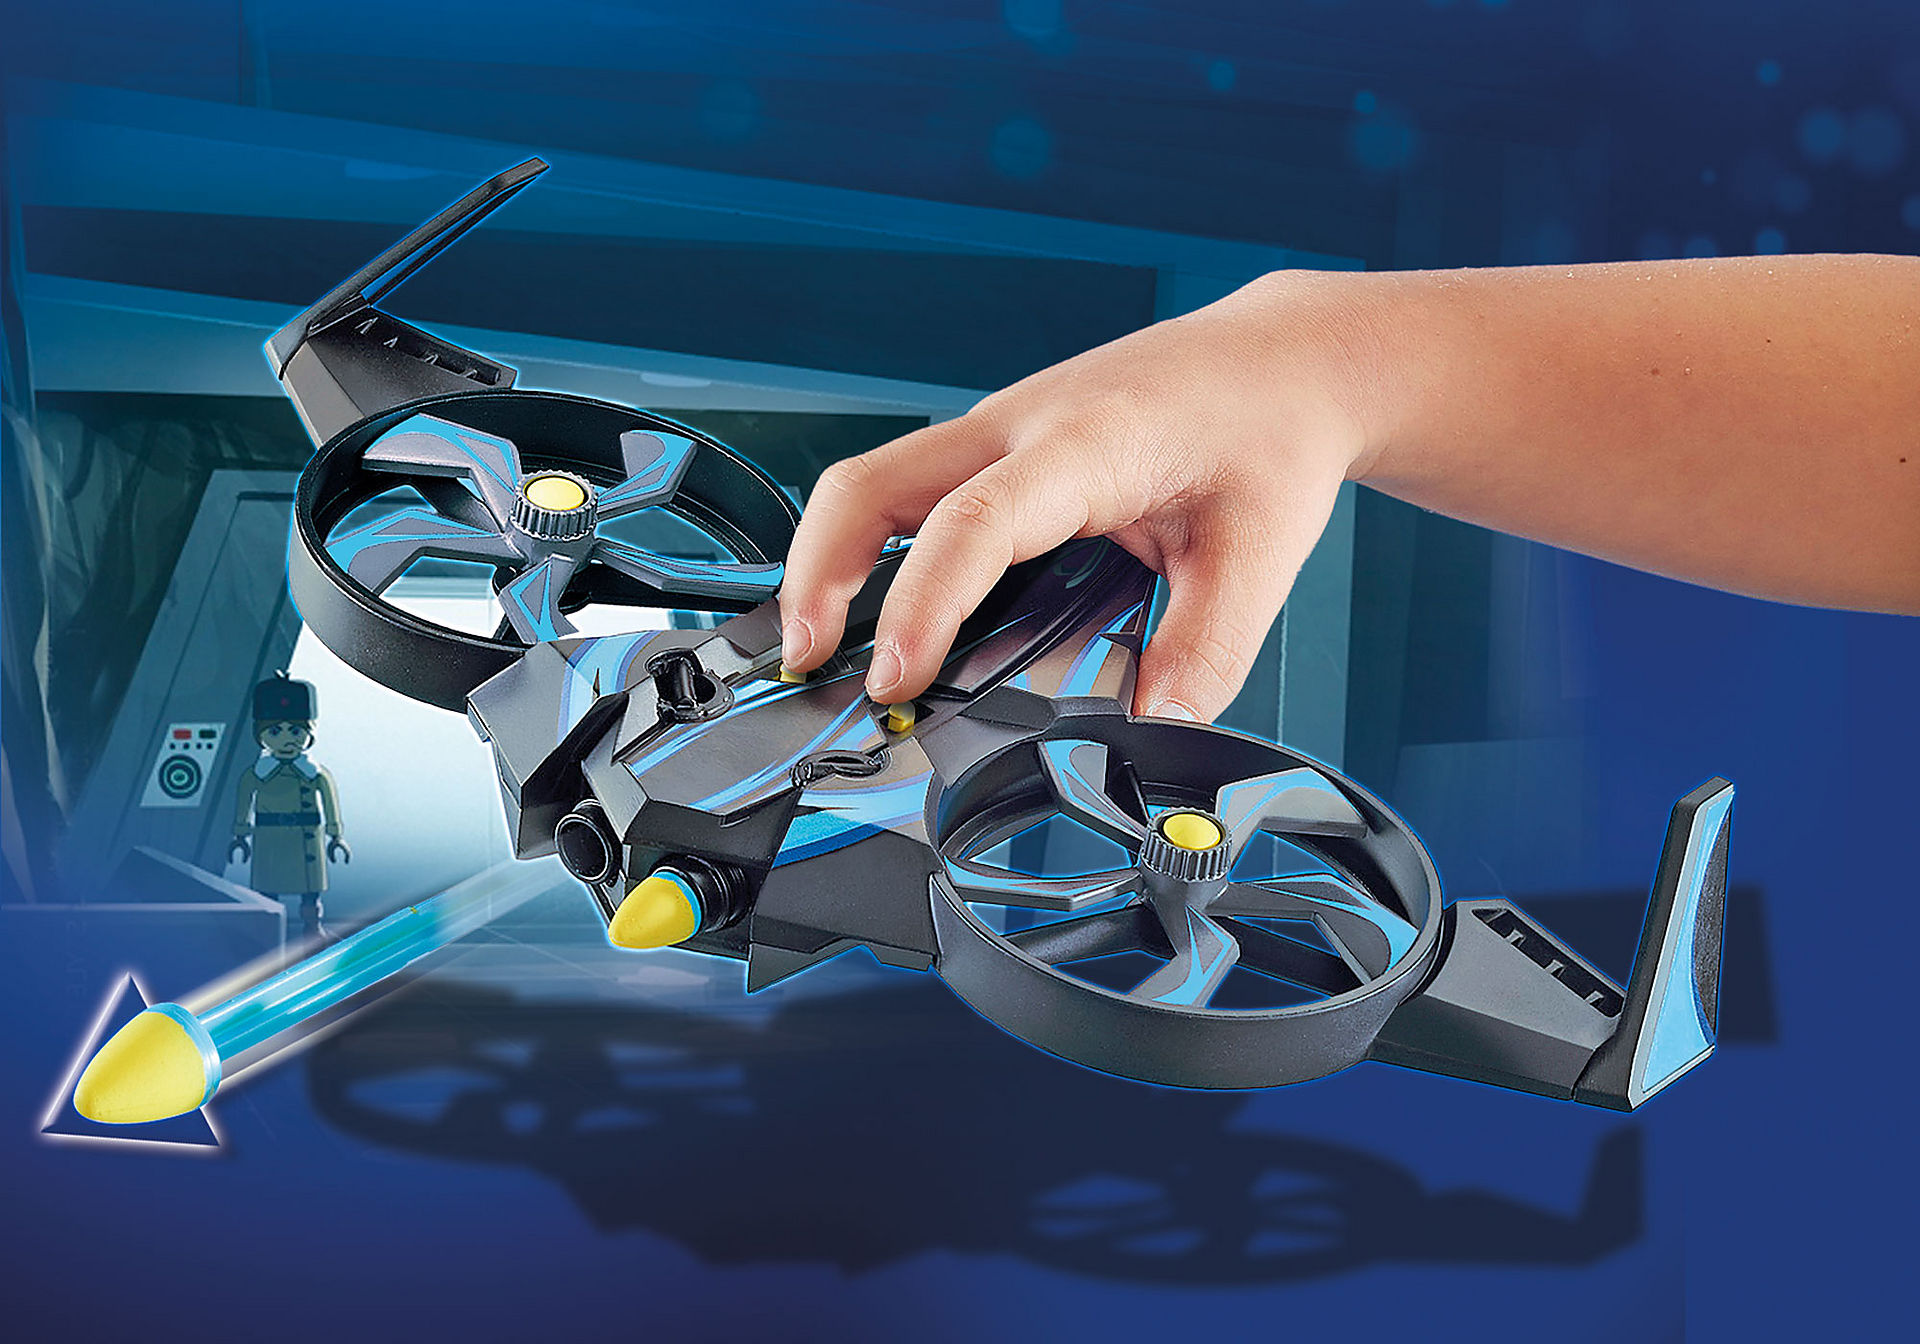 http://media.playmobil.com/i/playmobil/70071_product_extra1/PLAYMOBIL:THE MOVIE Robotitron with Drone